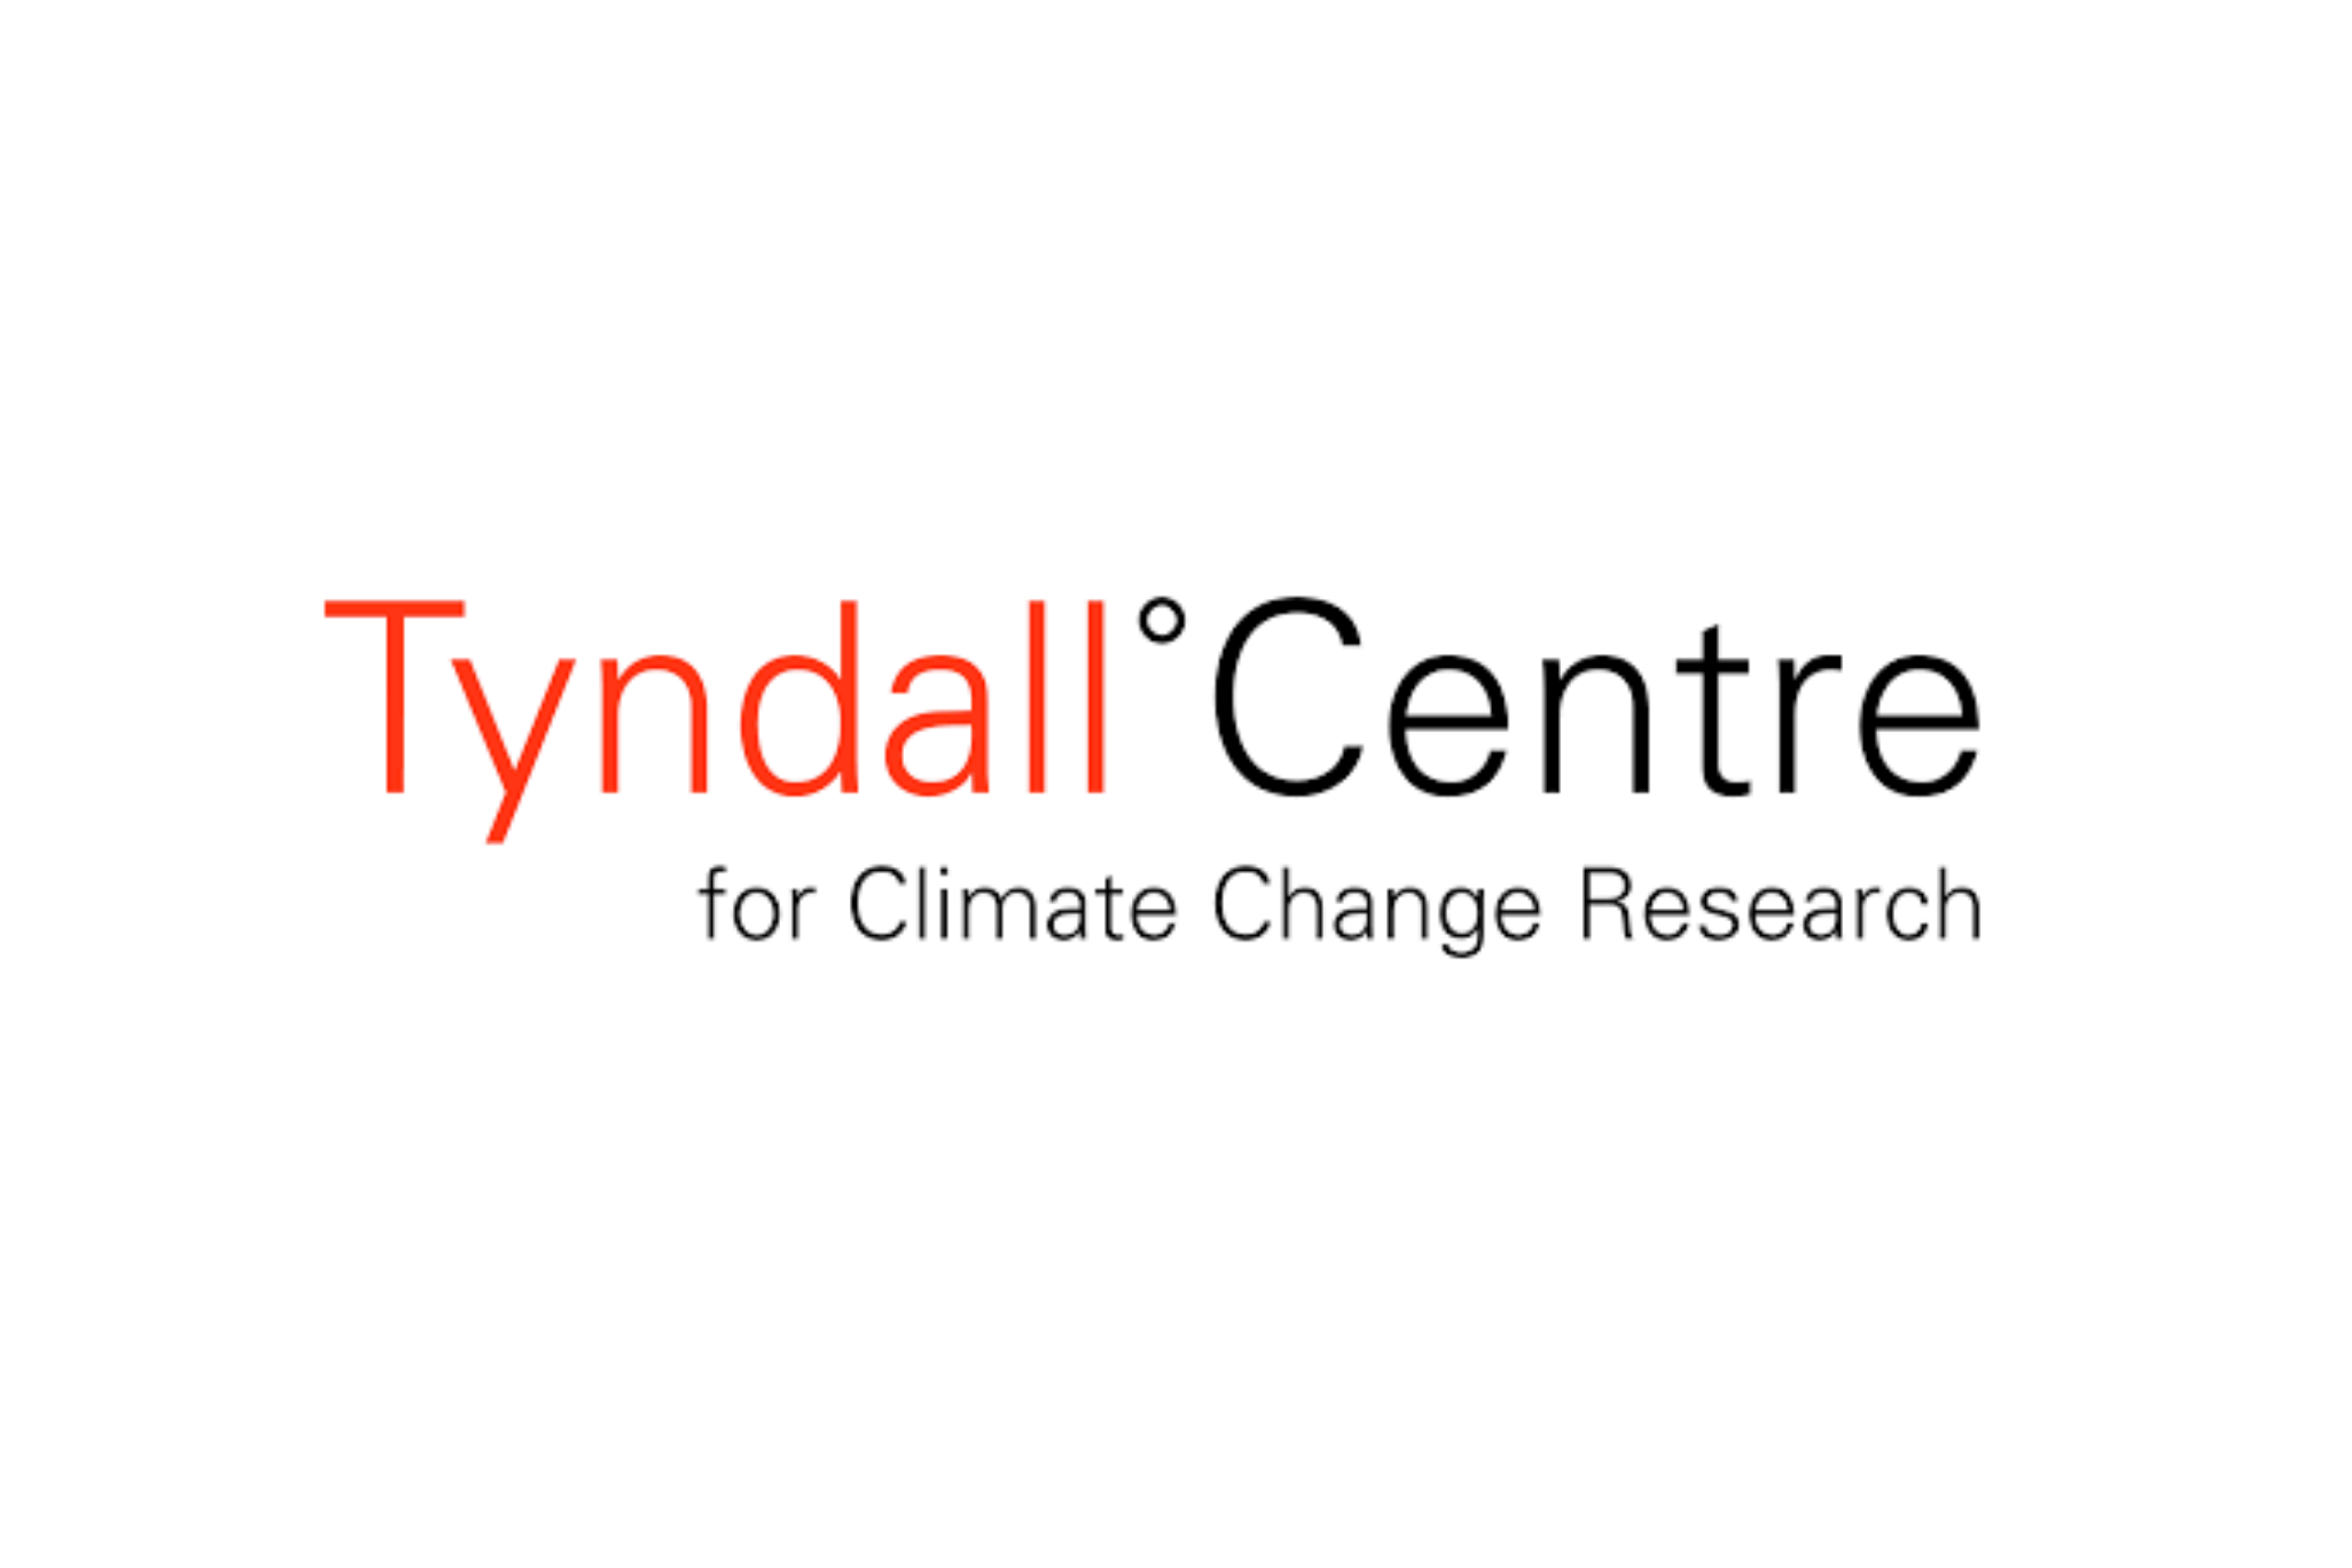 Tyndall Centre for Climate Change logo